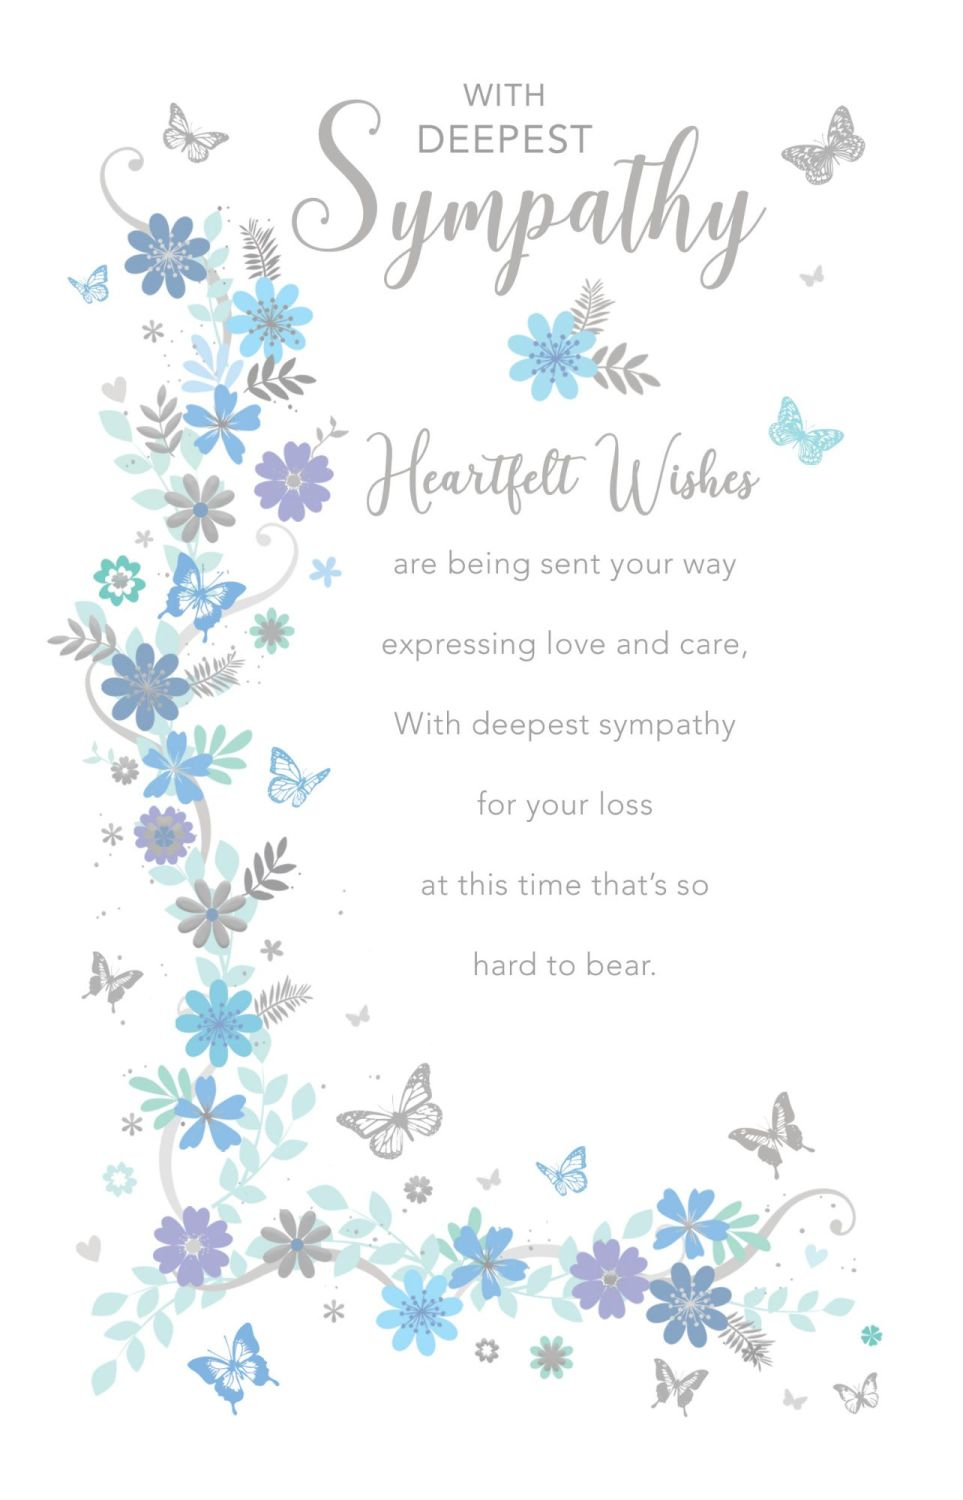 Heartfelt Wishes Sympathy  Cards - EXPRESSING Love And CARE - CONDOLENCE Ca